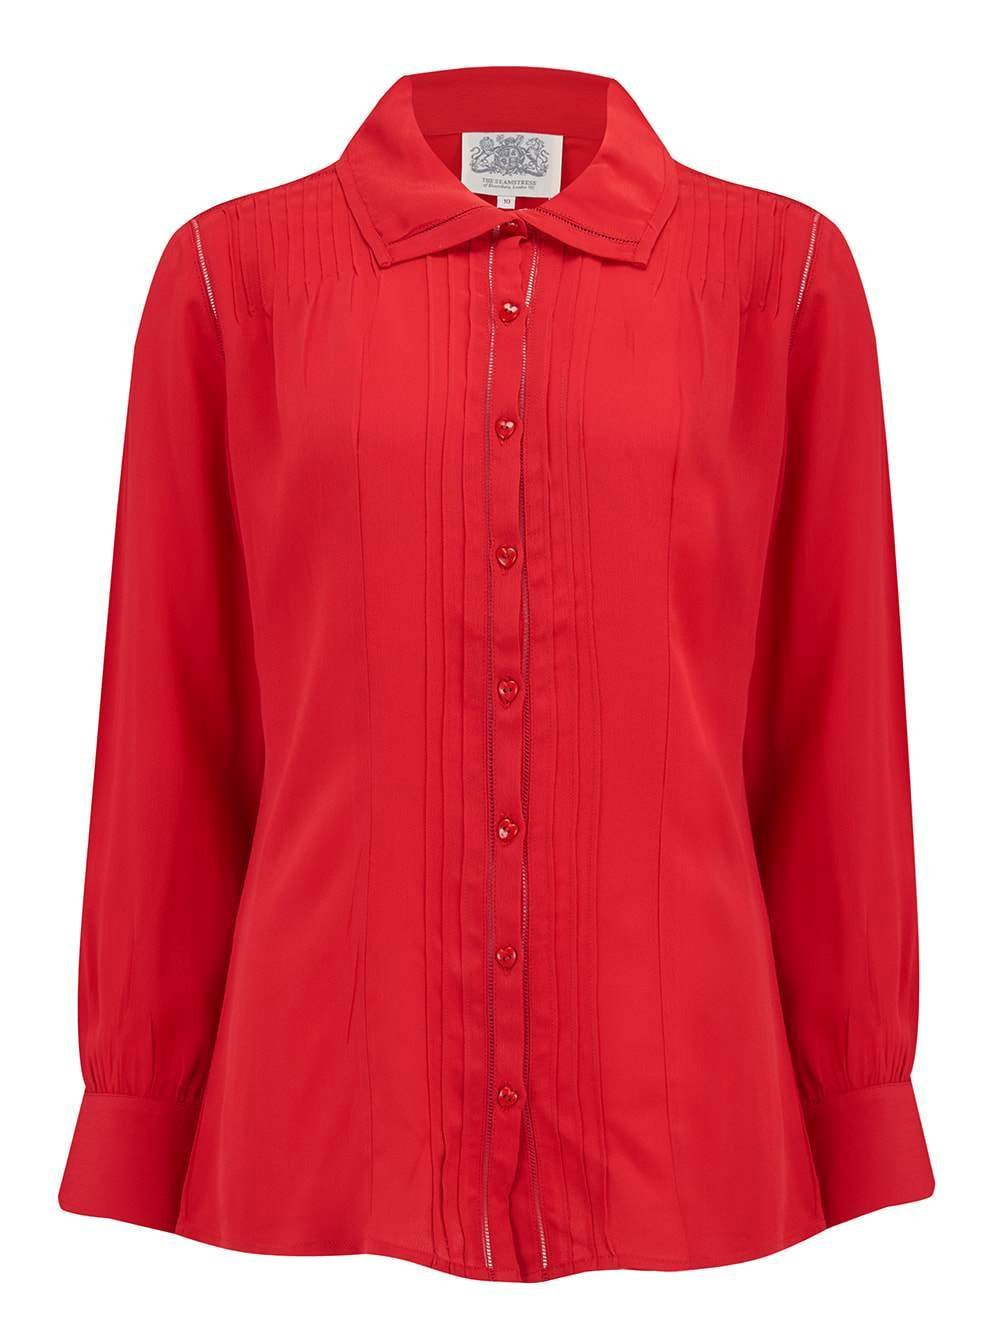 "The Seamstress Of Bloomsbury ""Alice"" Blouse in Red, Authentic & Classic 1940s Vintage Inspired Style - RocknRomance Clothing"